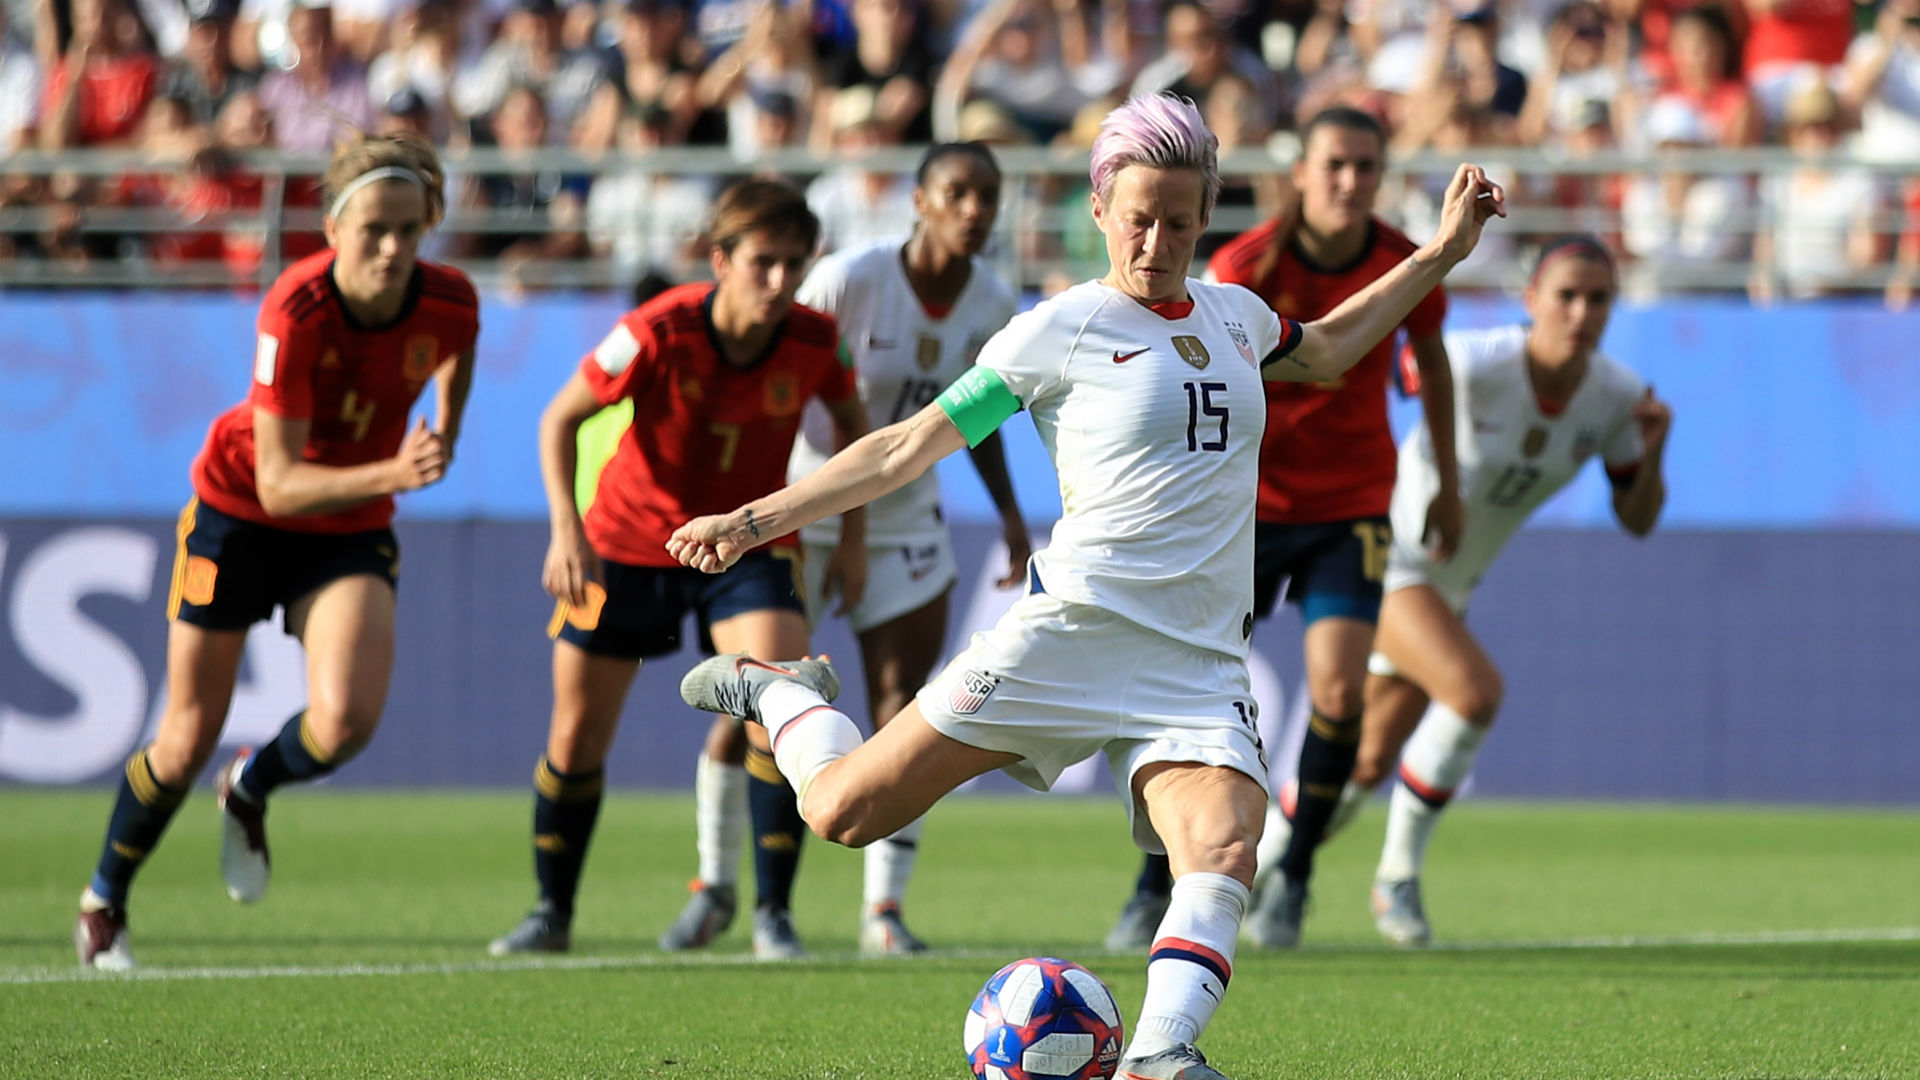 Women's World Cup 2019: USA's Megan Rapinoe scores twice to advance to France quarterfinal